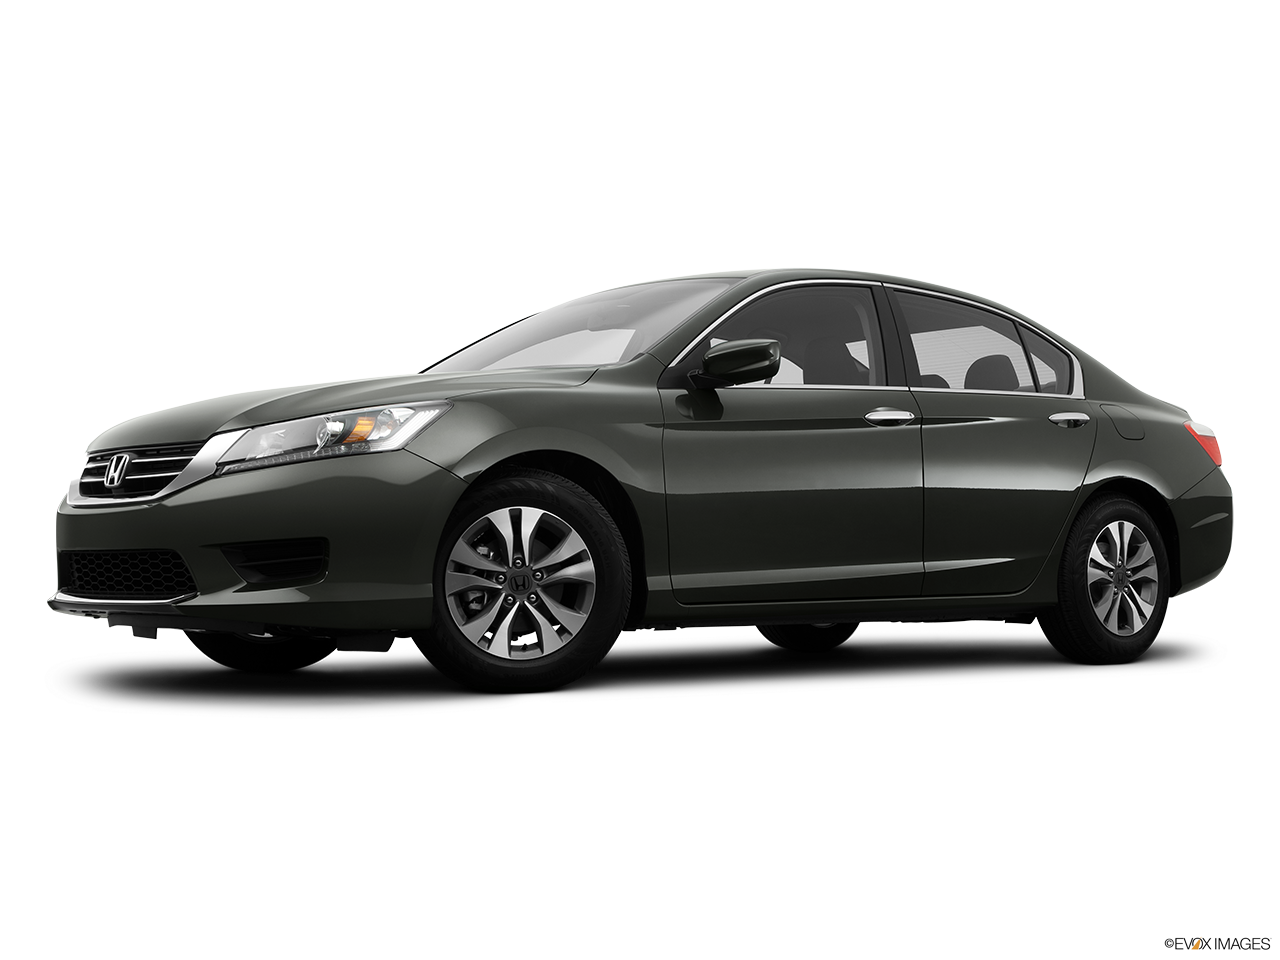 2014 honda civic oil change interval autos post for Honda civic oil change cost